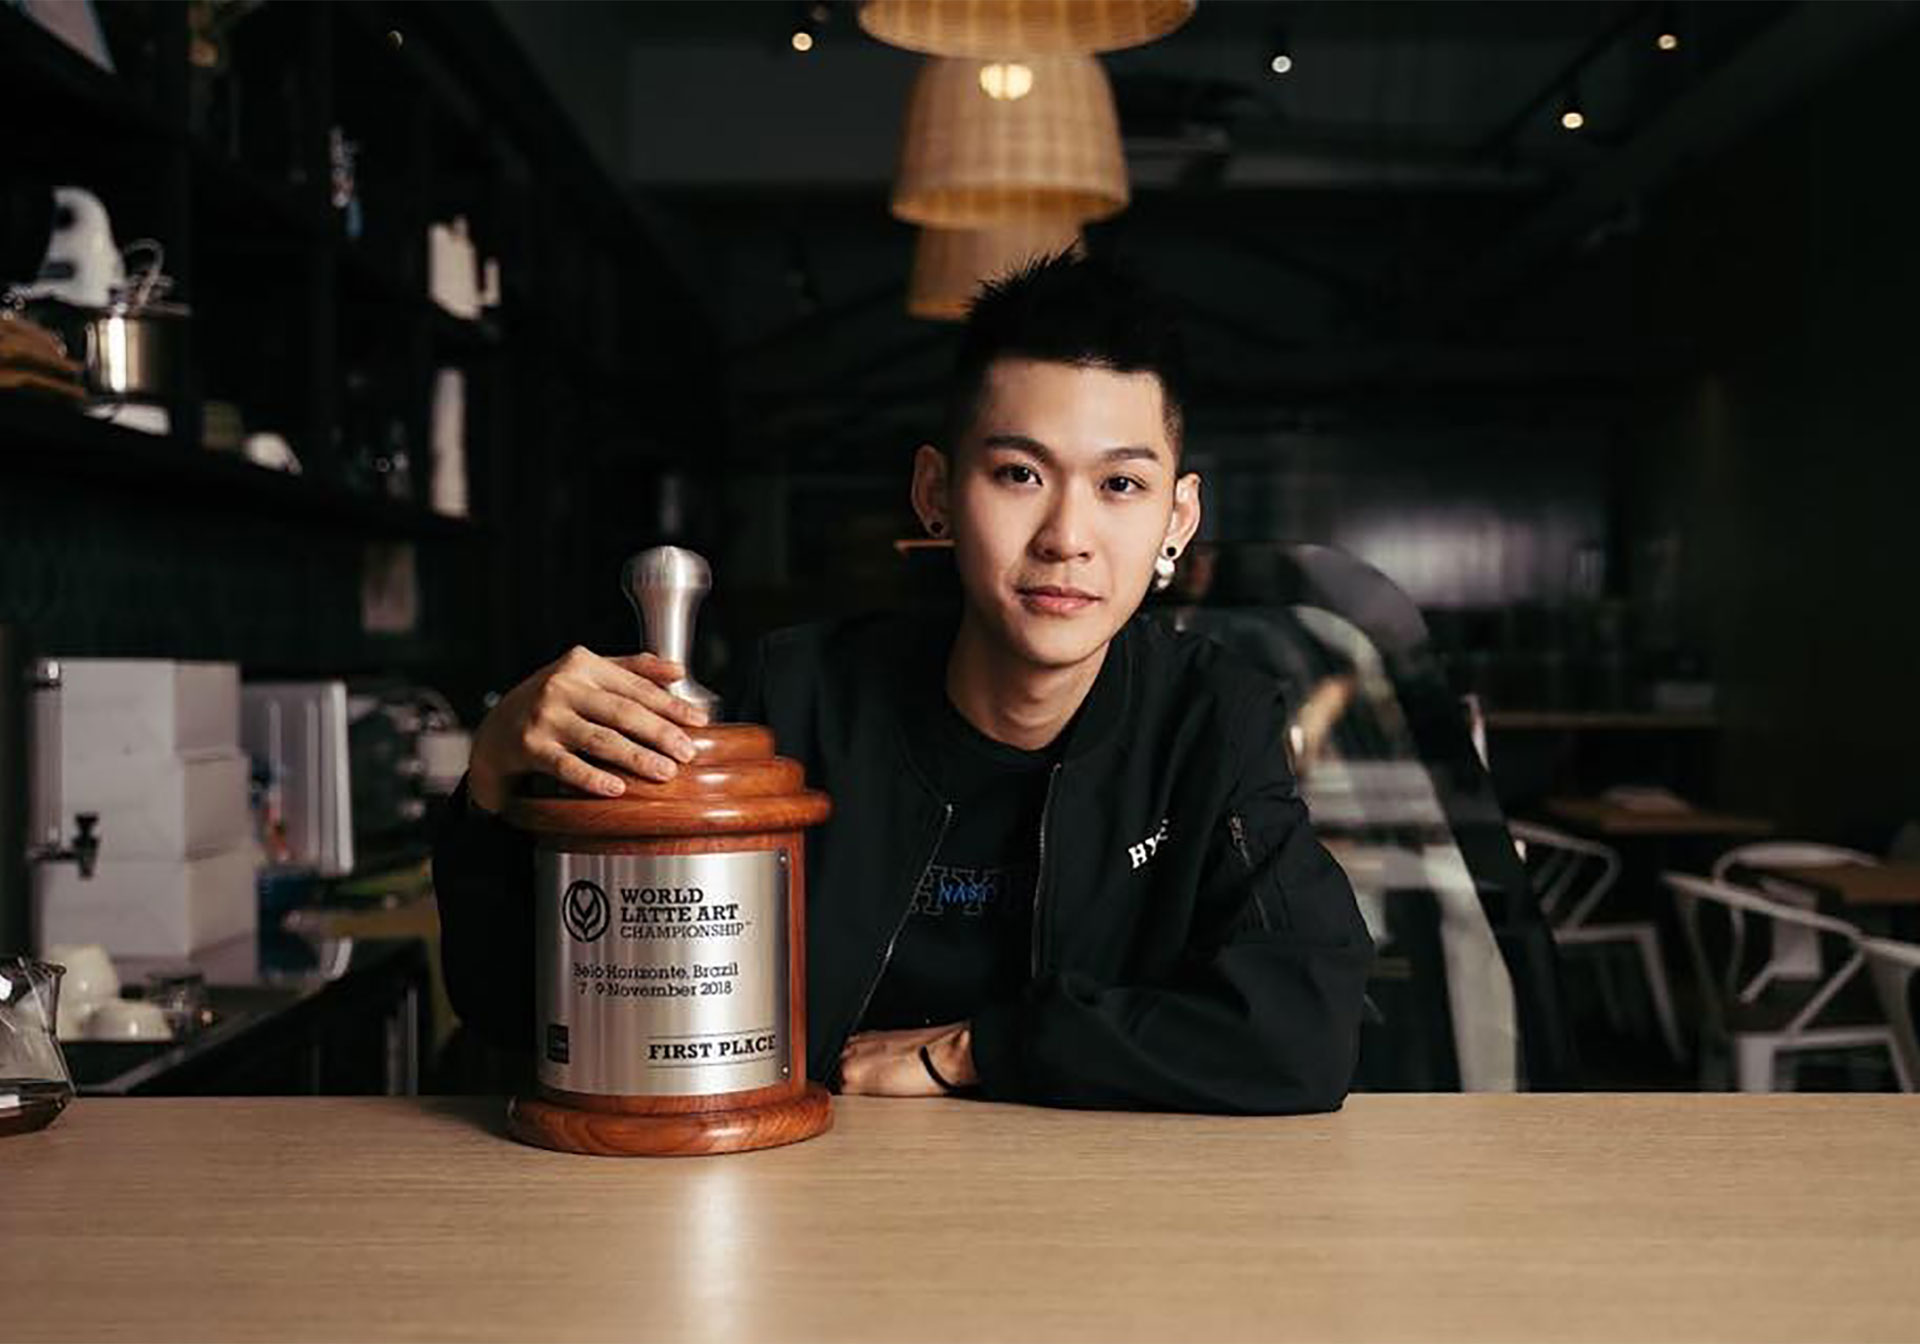 This High-School Dropout Is Now A 2-Time World Latte Art Champion